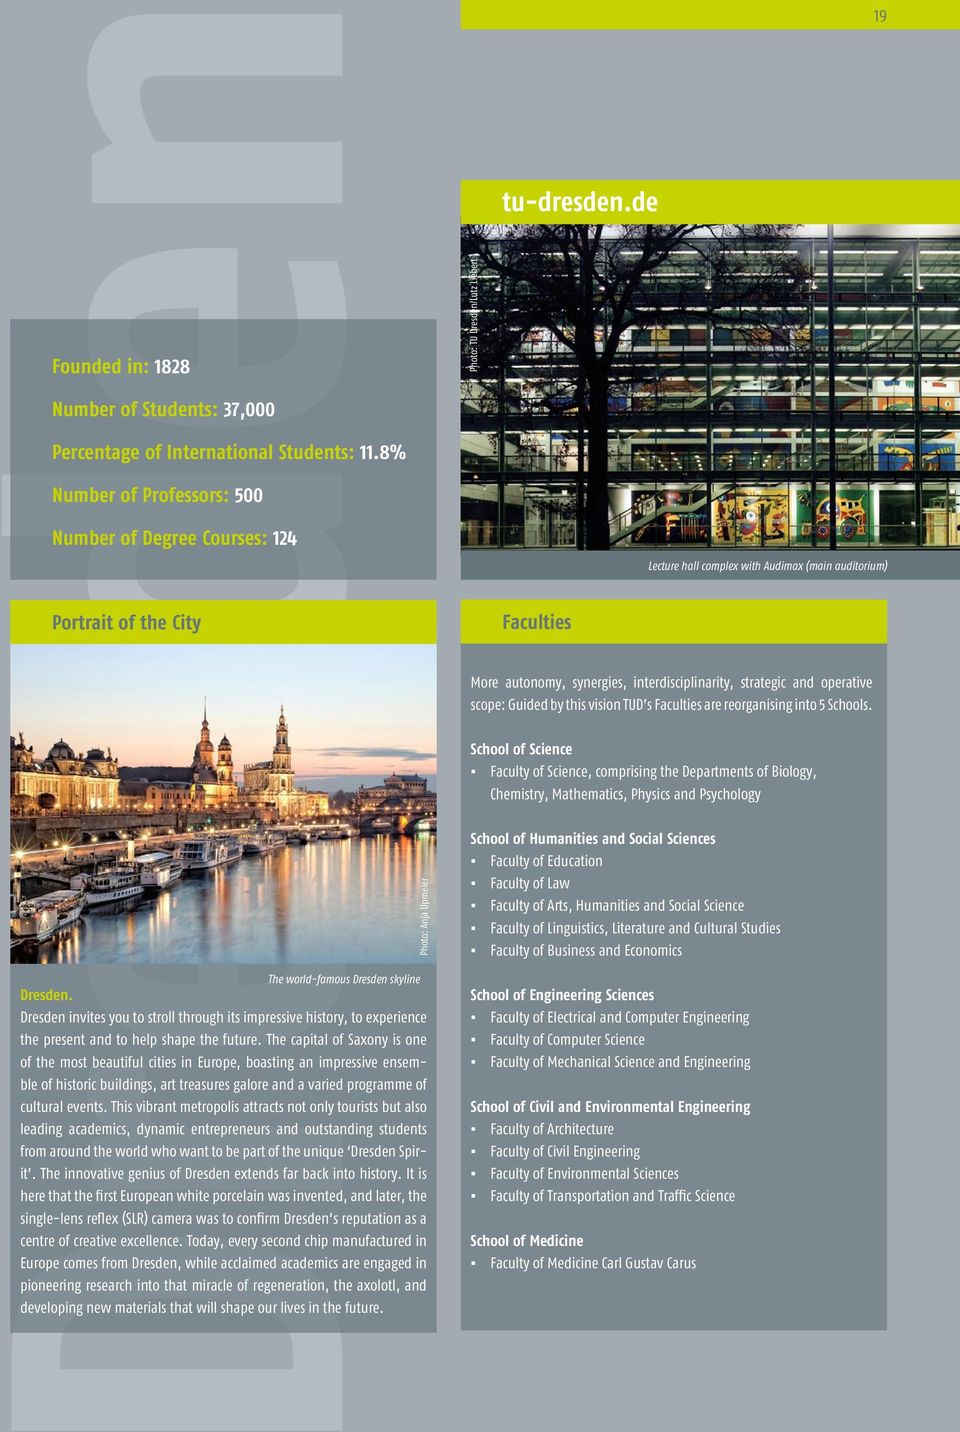 Dresden invites you to stroll through its impressive history, to experience the present and to help shape the future.